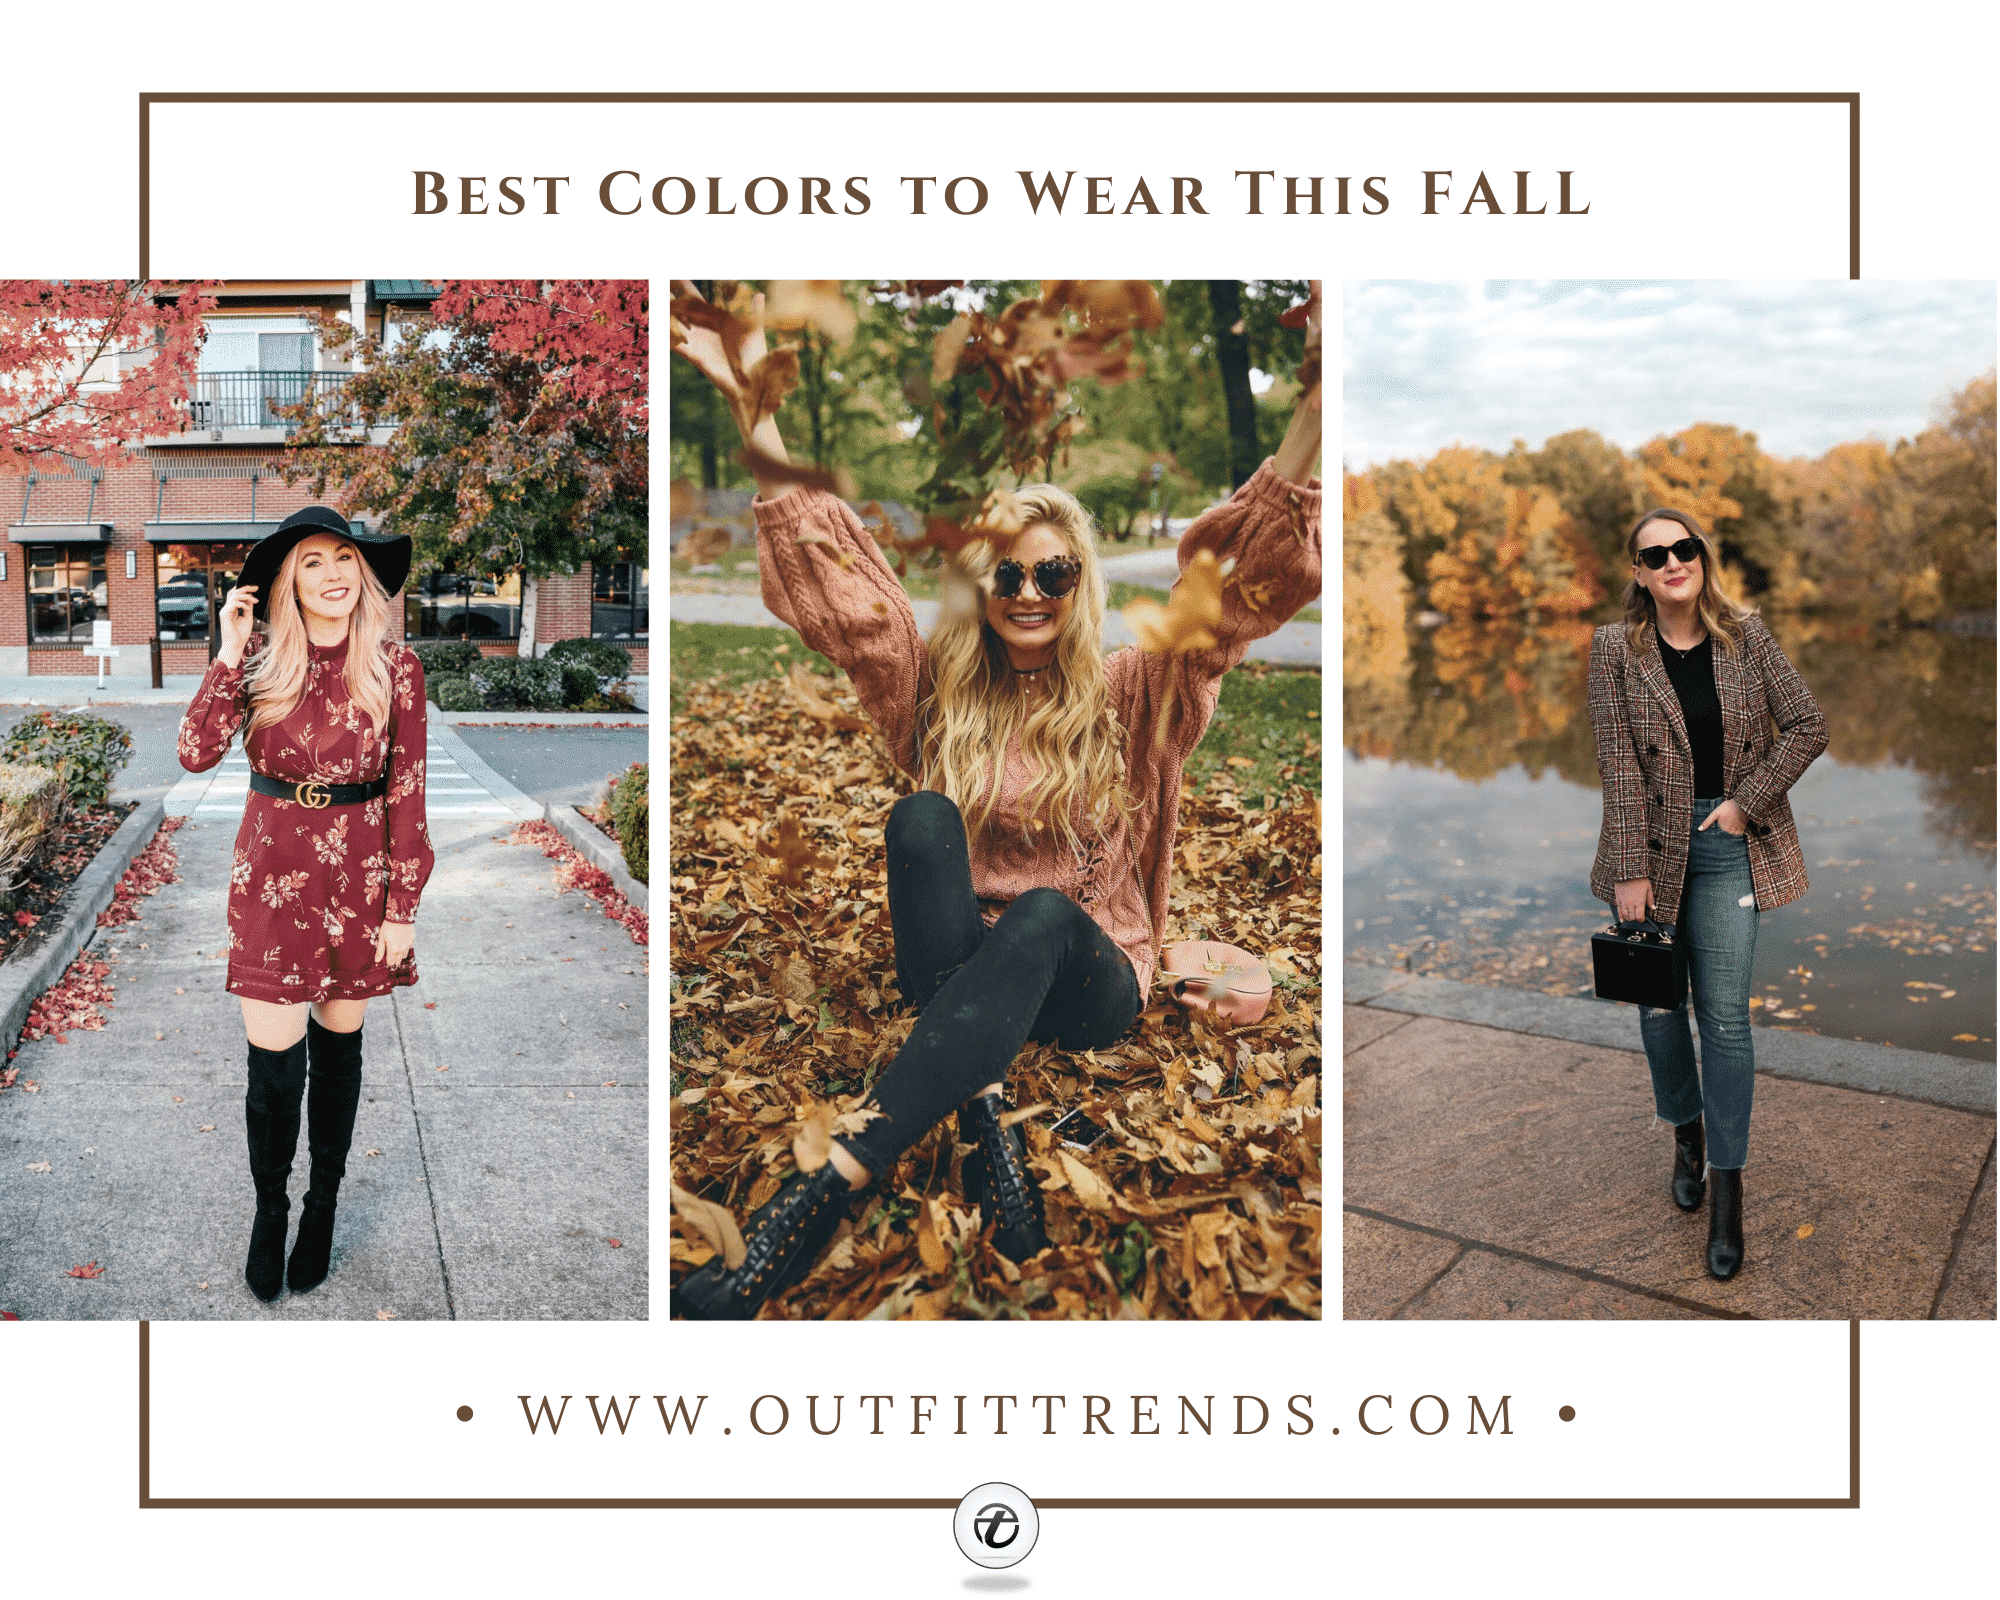 Womens Fall Colors 21 Best Colors to Wear this Fall